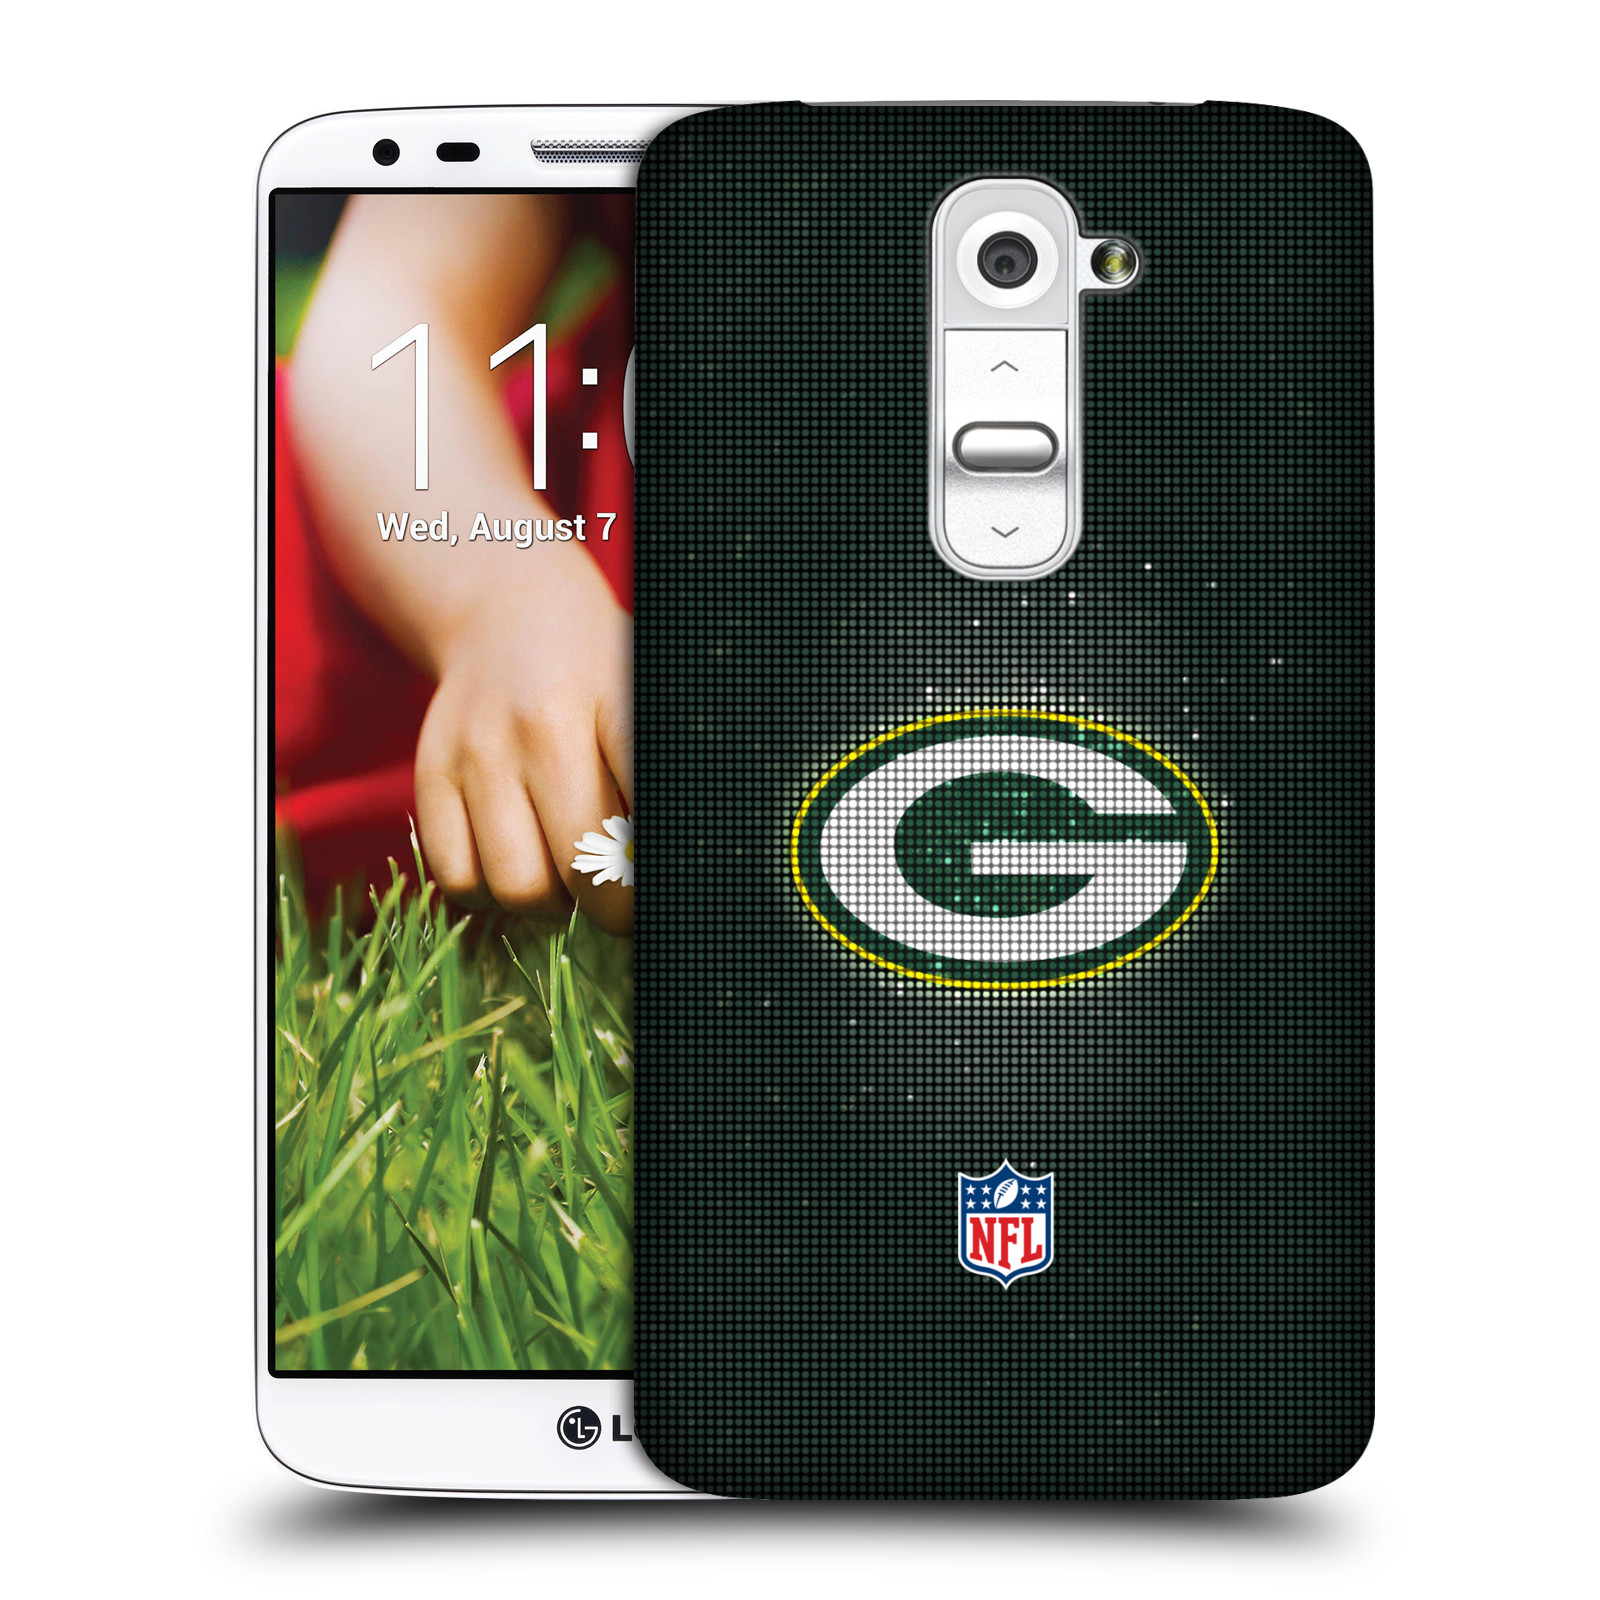 OFFICIAL NFL 2017/18 GREEN BAY PACKERS HARD BACK CASE FOR LG PHONES 2